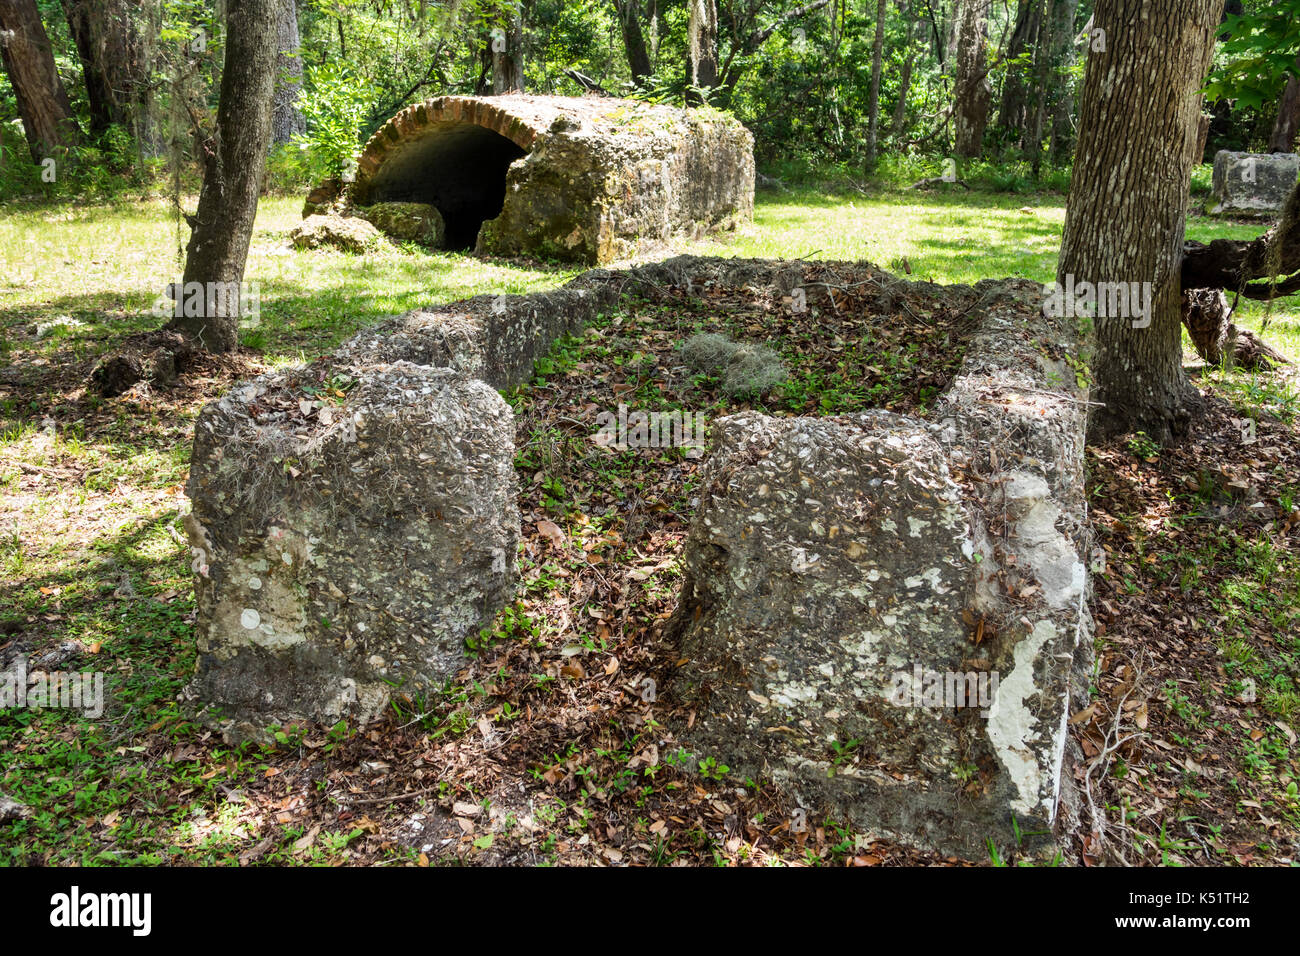 St. Saint Simons Island Georgia National Park Service Fort Frederica National Monument archaeological site - Stock Image